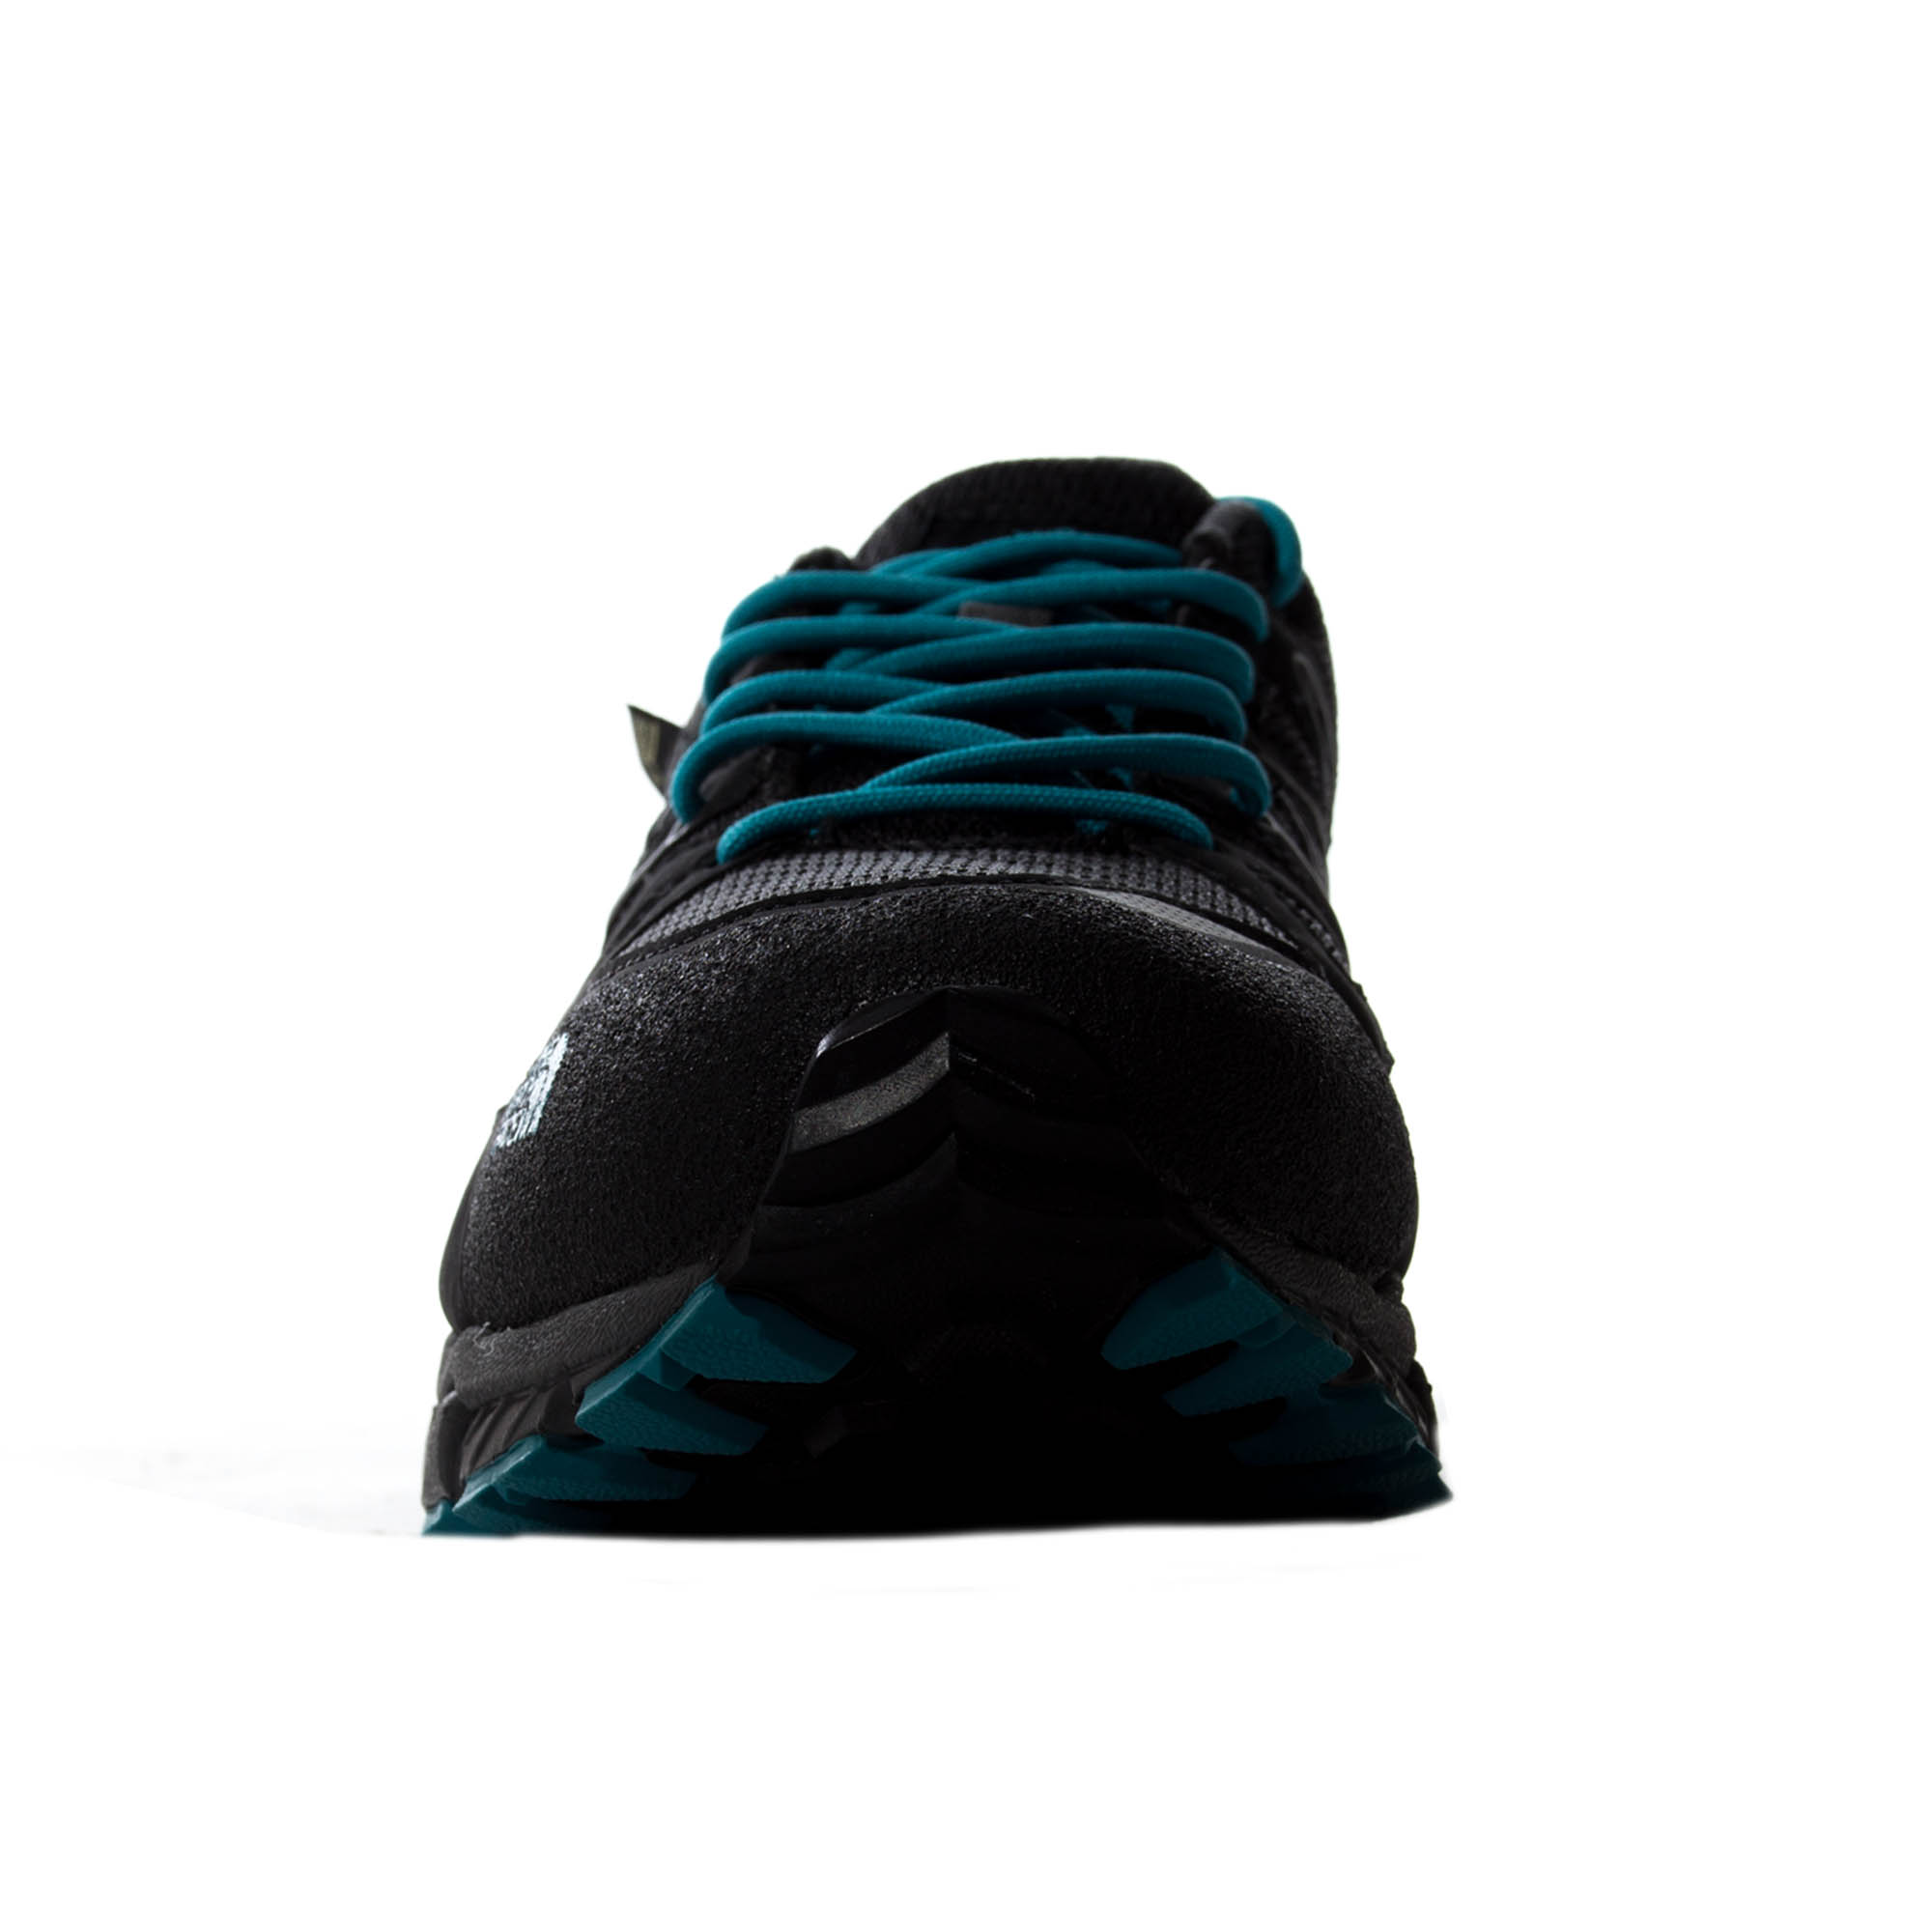 thumbnail 9 - The North Face Storm Gore-Tex Mens Outdoor Walking Hiking Shoe Black/Blue